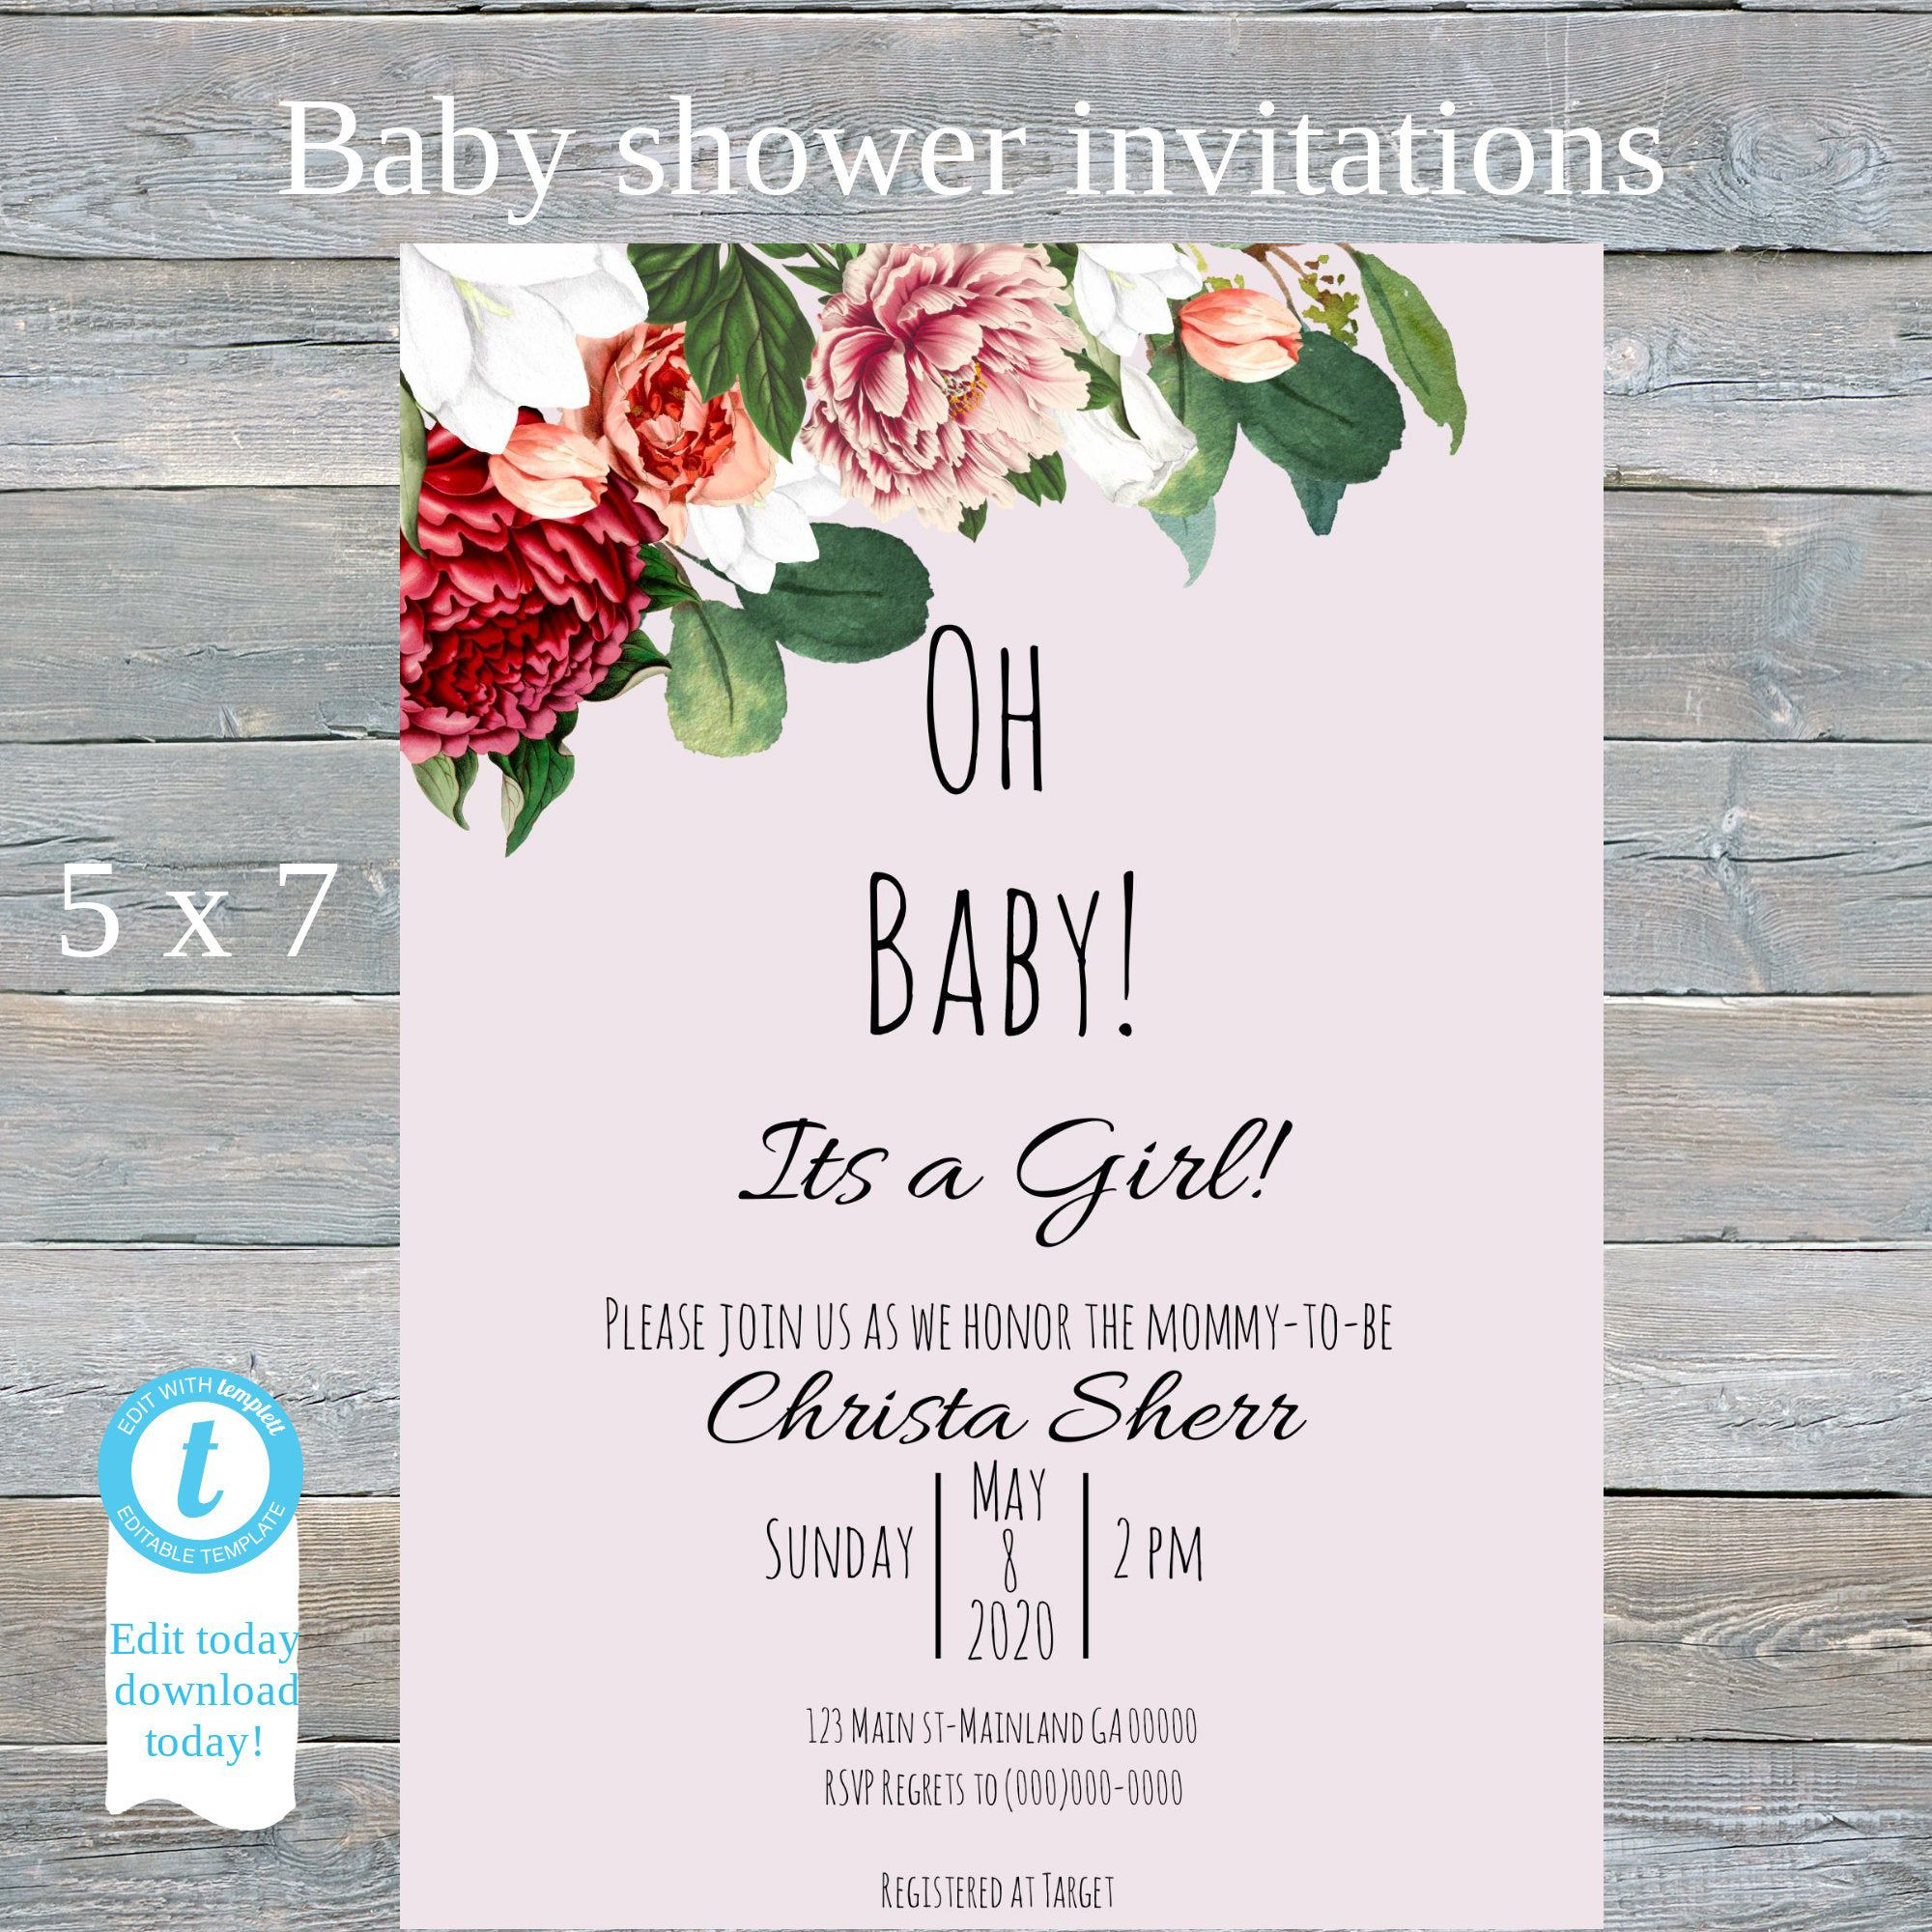 Digital baby shower Invitation, Oh BABY Blush,Peony, Edit today download today!